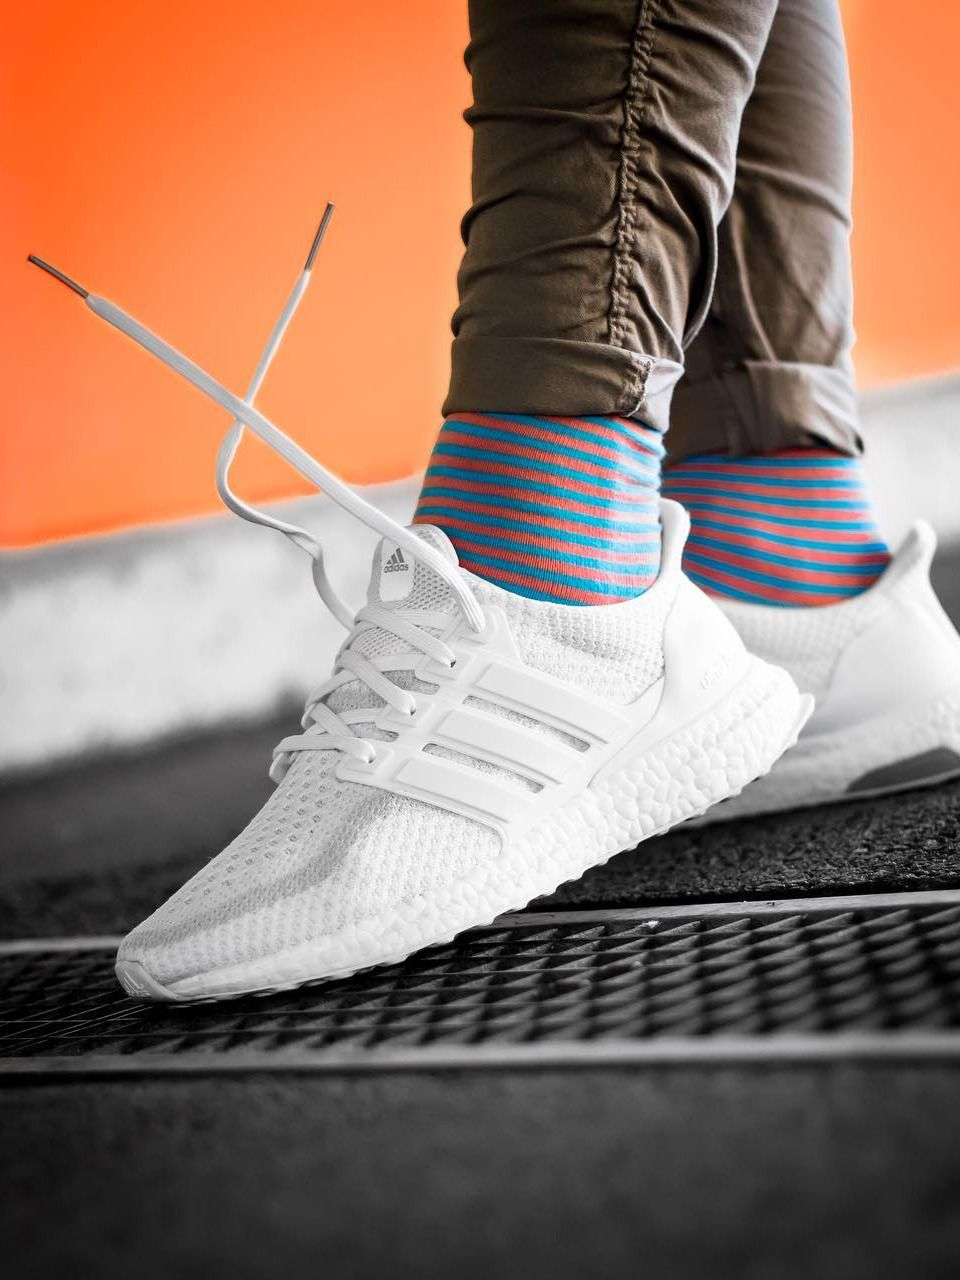 brand new 02a78 c0d93 Adidas Ultra Boost 2.0 Triple White - 2016 (by ...